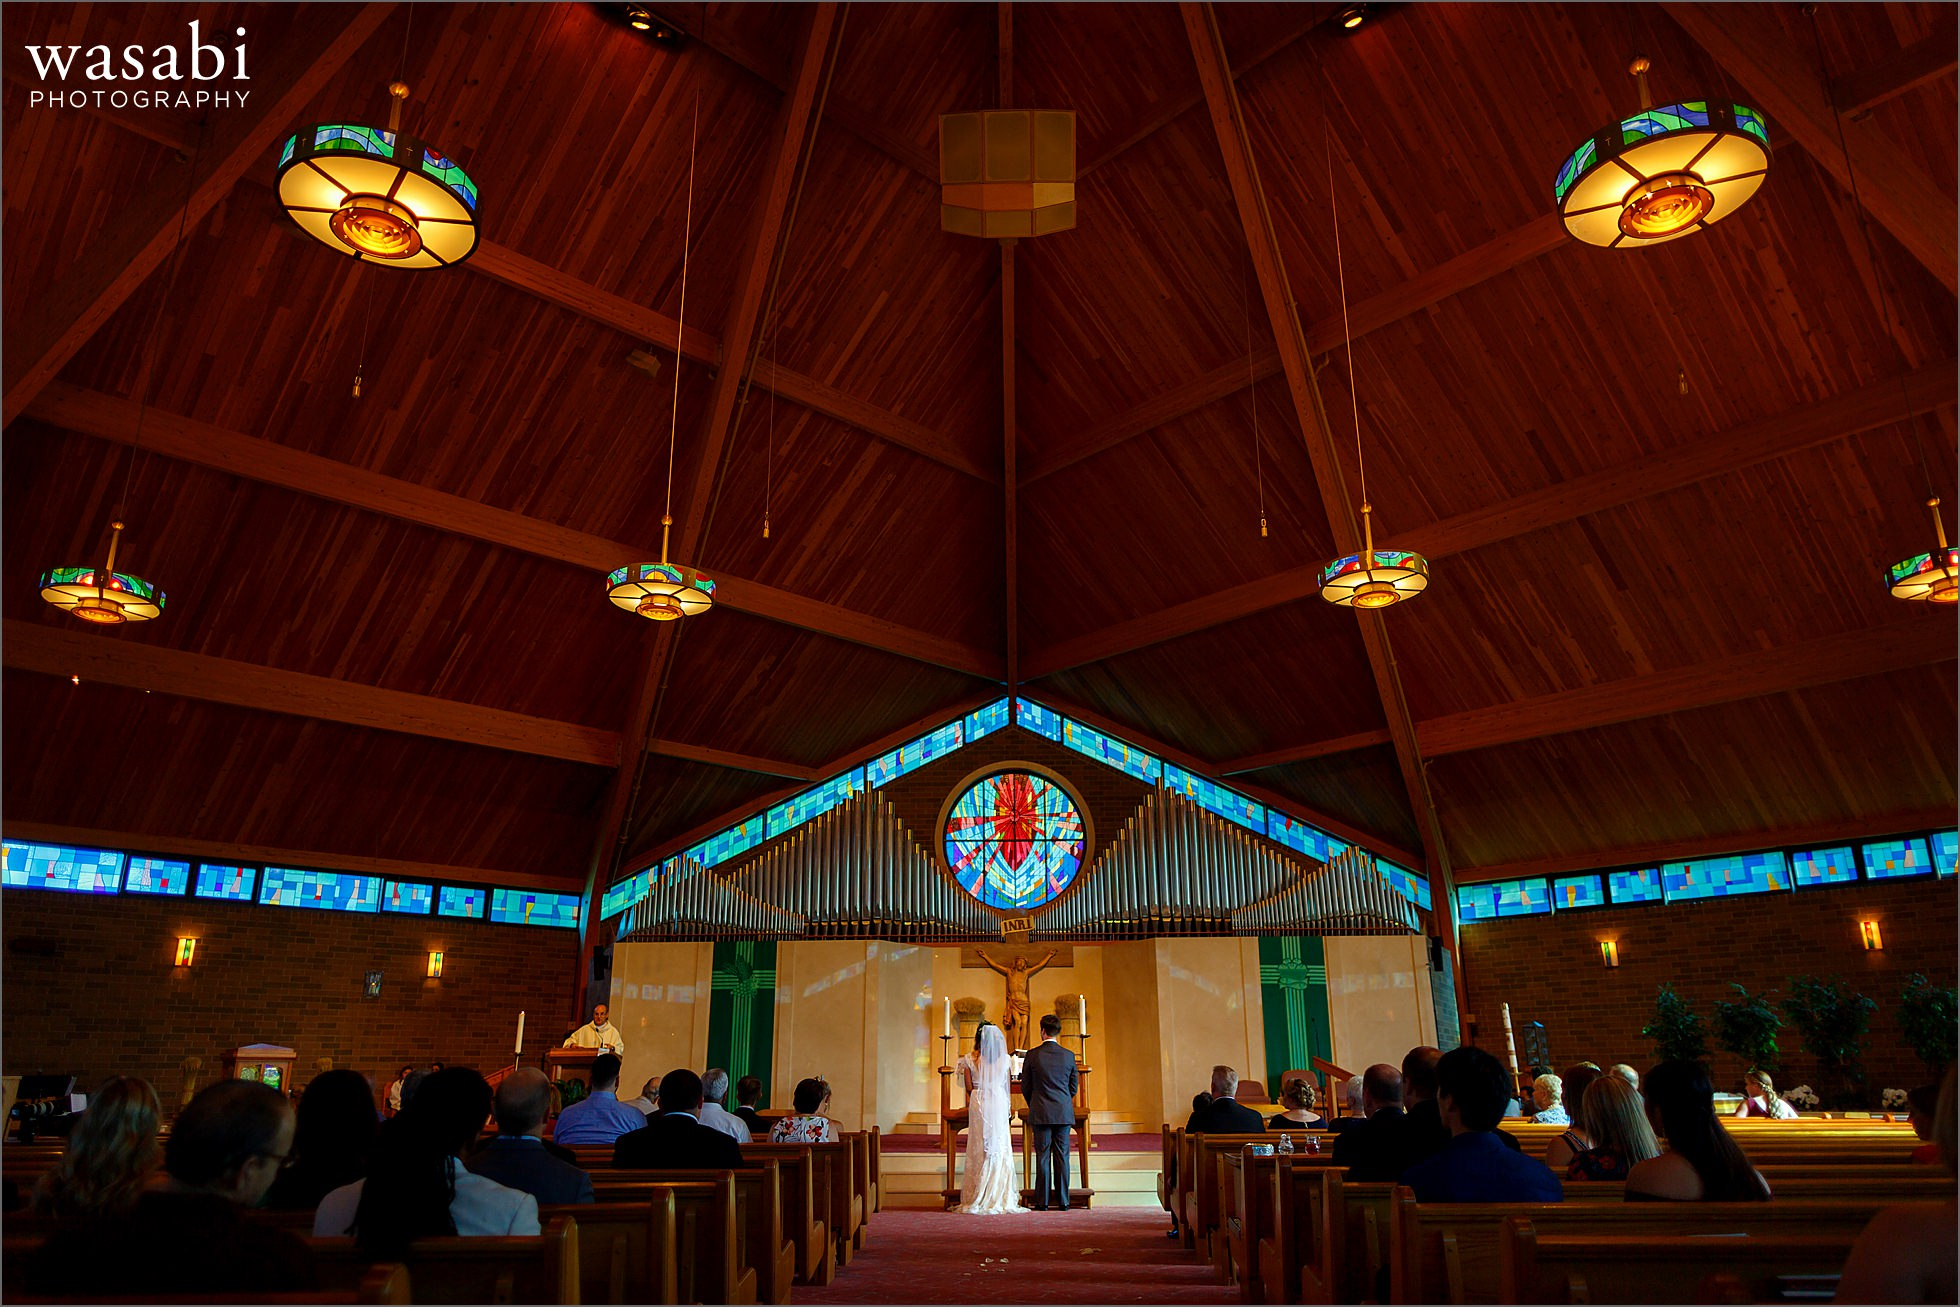 wide angle view showing the full interior during wedding ceremony at Sacred Heart Catholic Church in Palos Hills